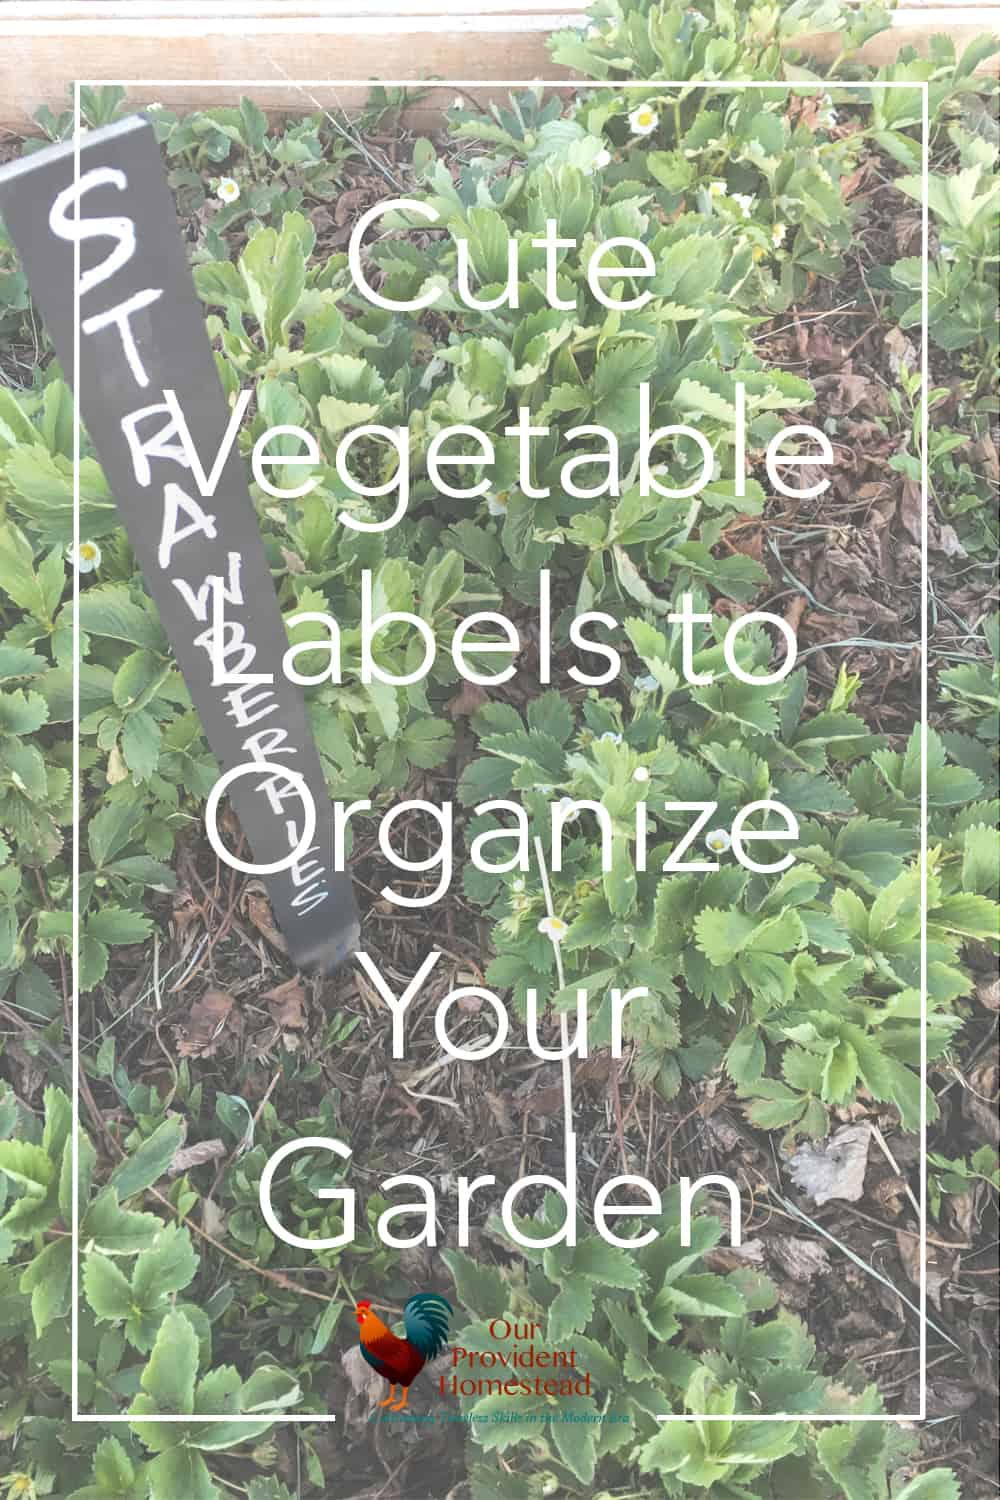 How do you make your garden look pretty and organized? These fun and cute vegetable labels are a quick way to organize your garden. #garden #gardening #gardeningtips #homesteading